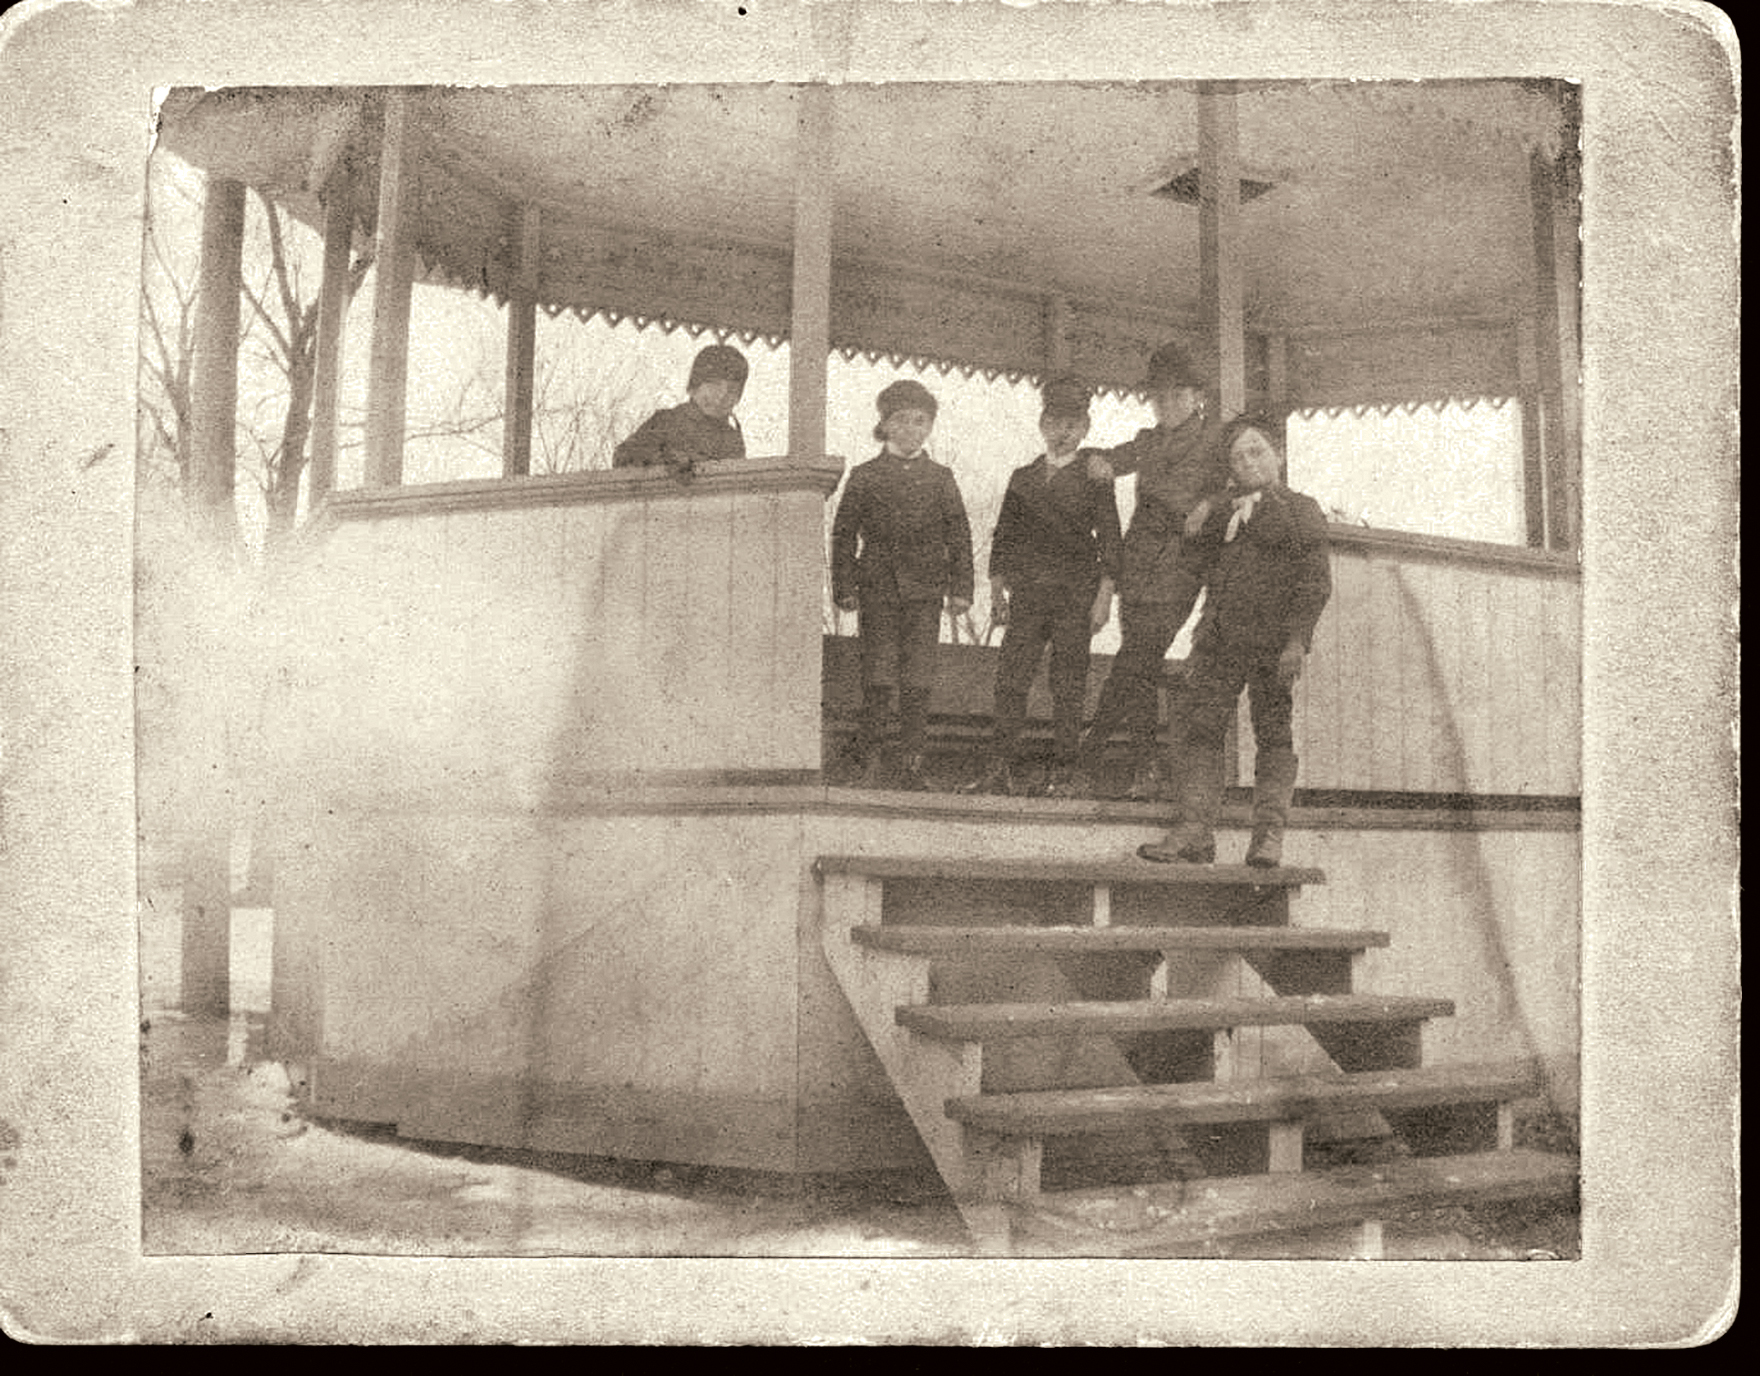 Children at Central Park bandstand, late nineteenth century